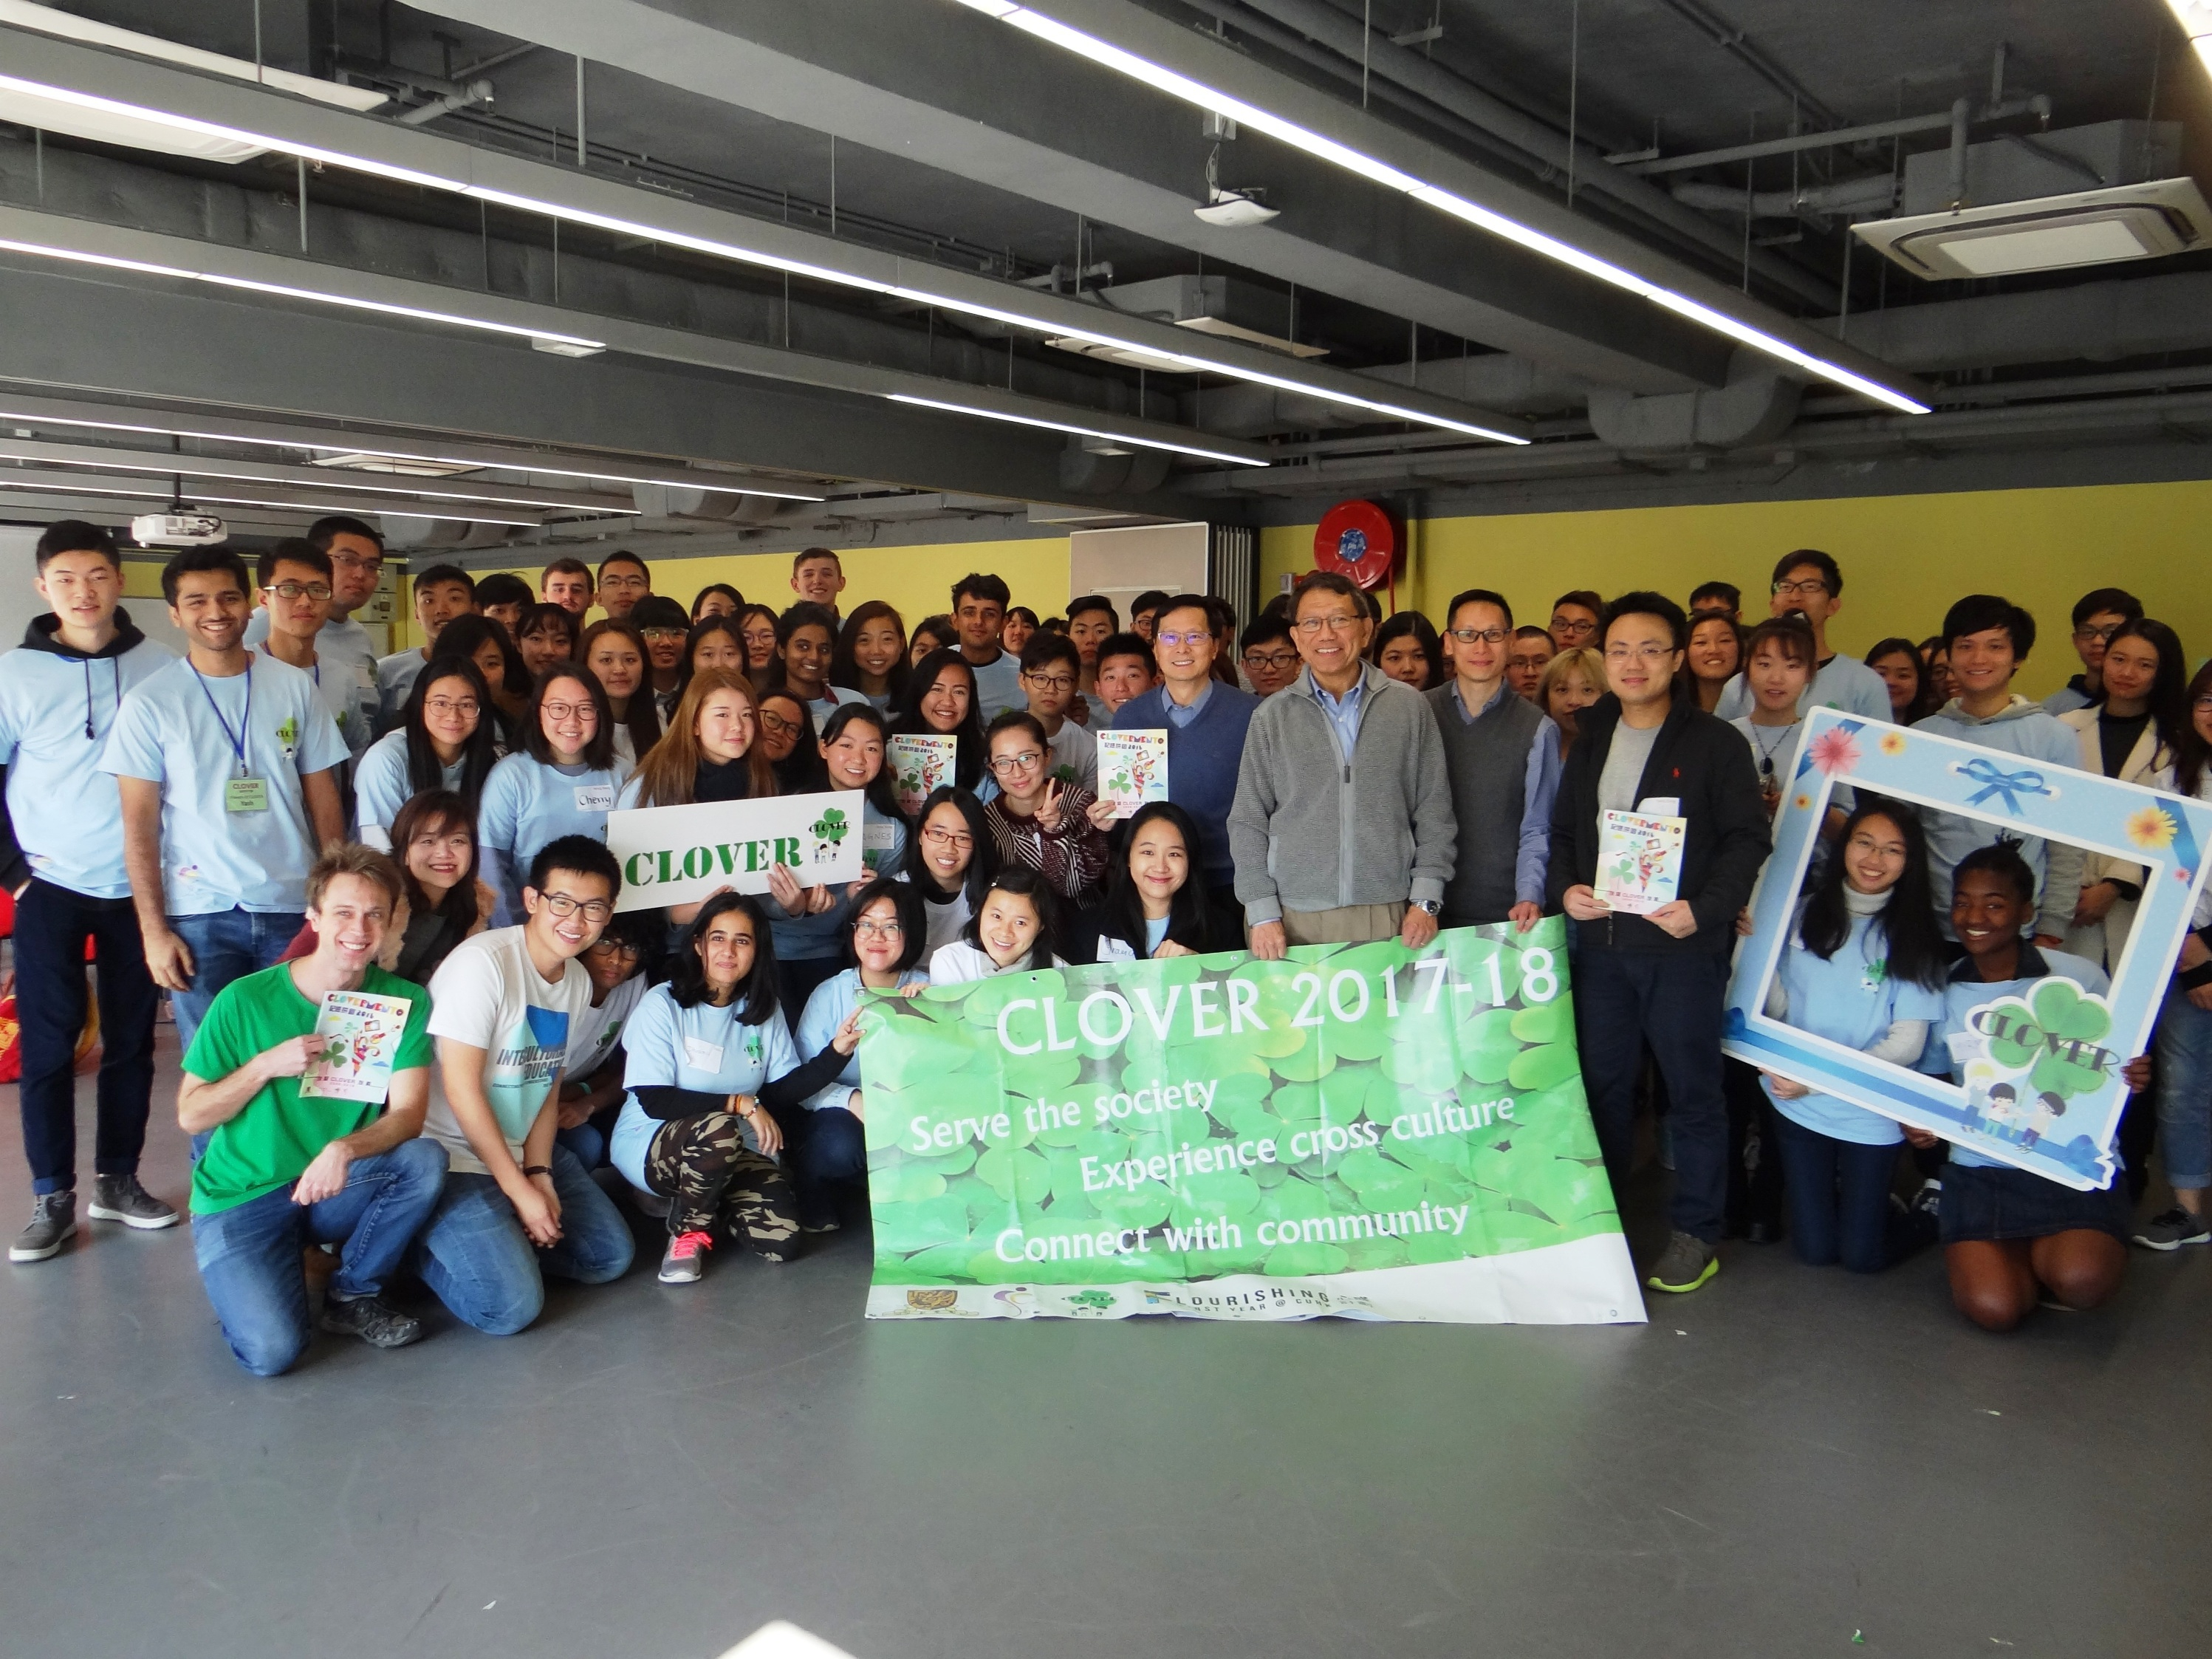 Professor Rocky S. Tuan, Vice-Chancellor and President of CUHK, and students participating in the cultural diversity and voluntary service programme CLOVER in its ninth year